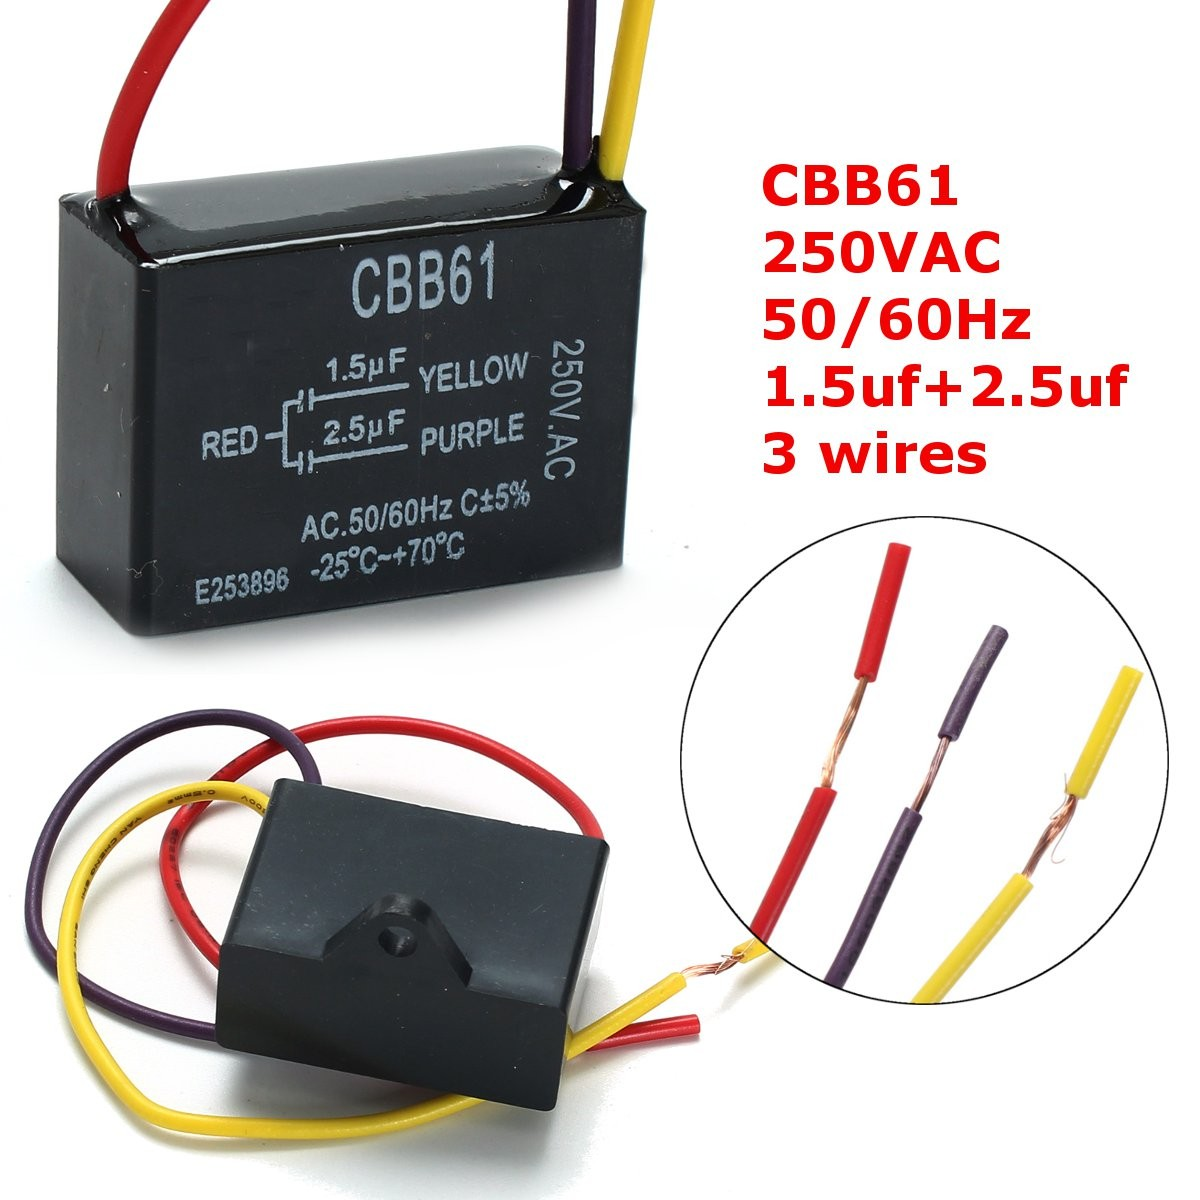 hight resolution of 1pc black fan capacitor cbb61 1 5uf 2 5uf 3 wires ac 250v 50 60hz capacitor for ceiling fan in capacitors from electronic components supplies on